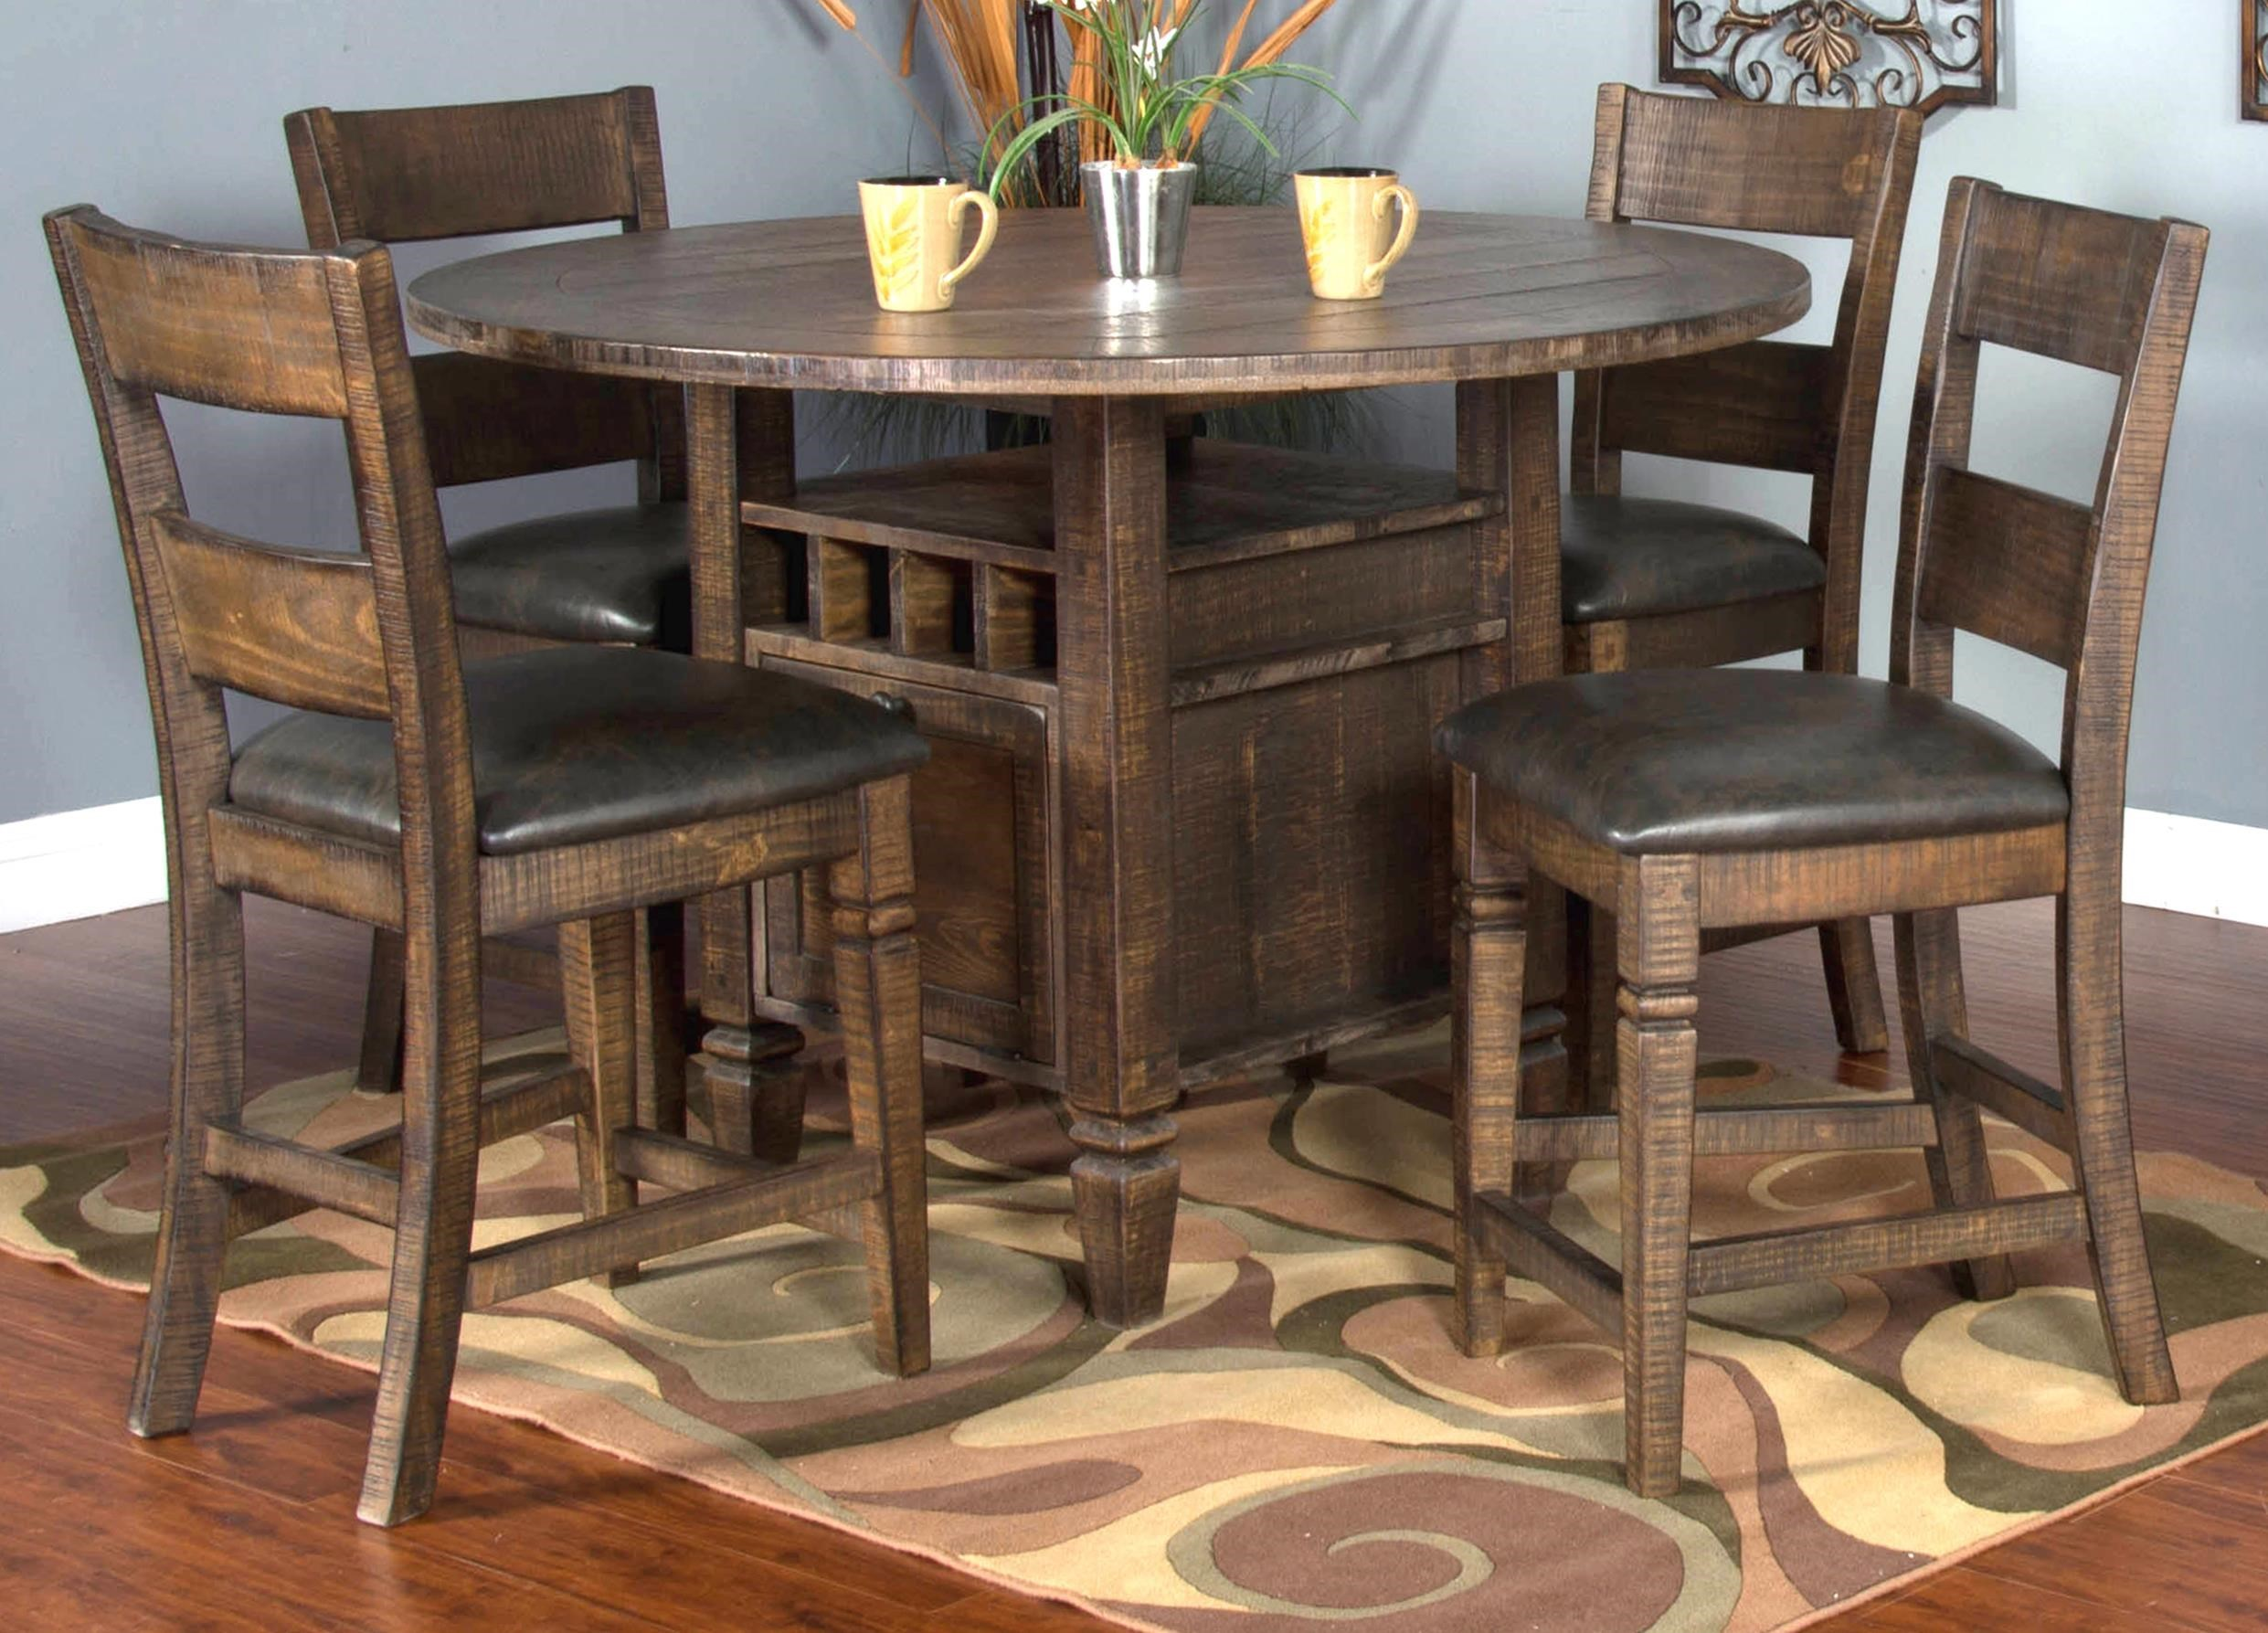 Dining Set For 4 Part - 34: Market Square Thatcher 5-Piece Dining Set Includes 4 Barstools - Morris  Home - Dining 5 Piece Set